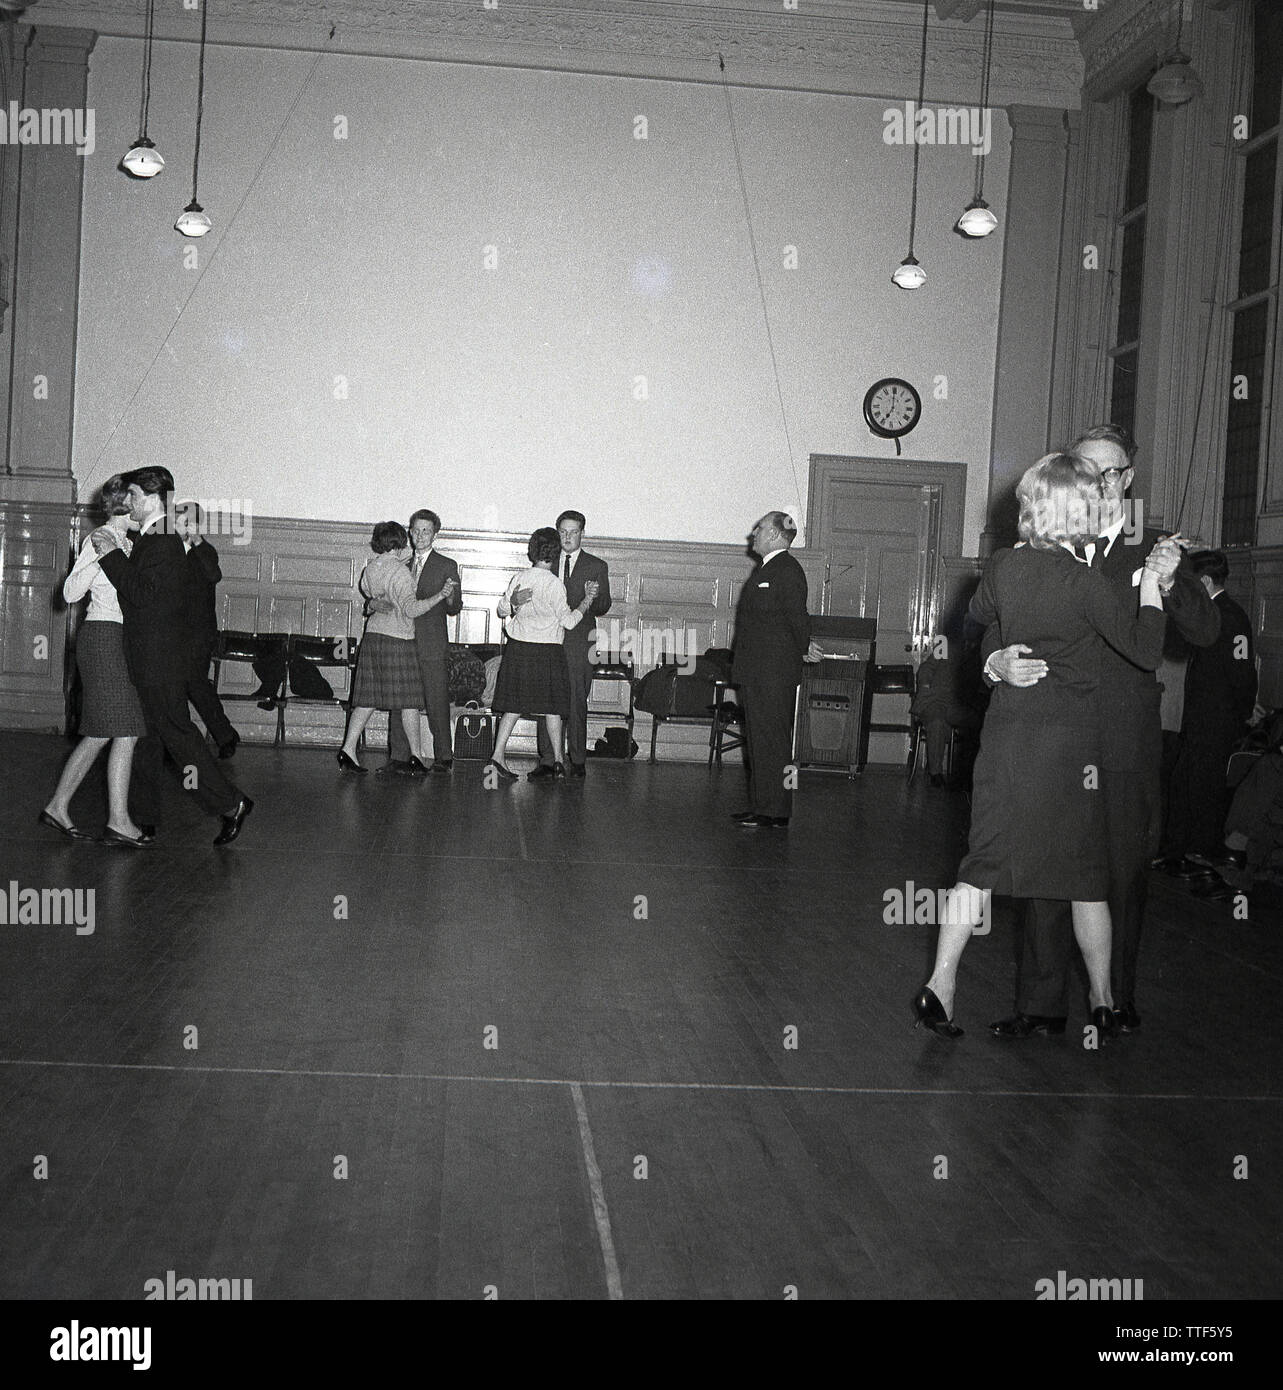 1950s, historical, men and women dancing together at an evening